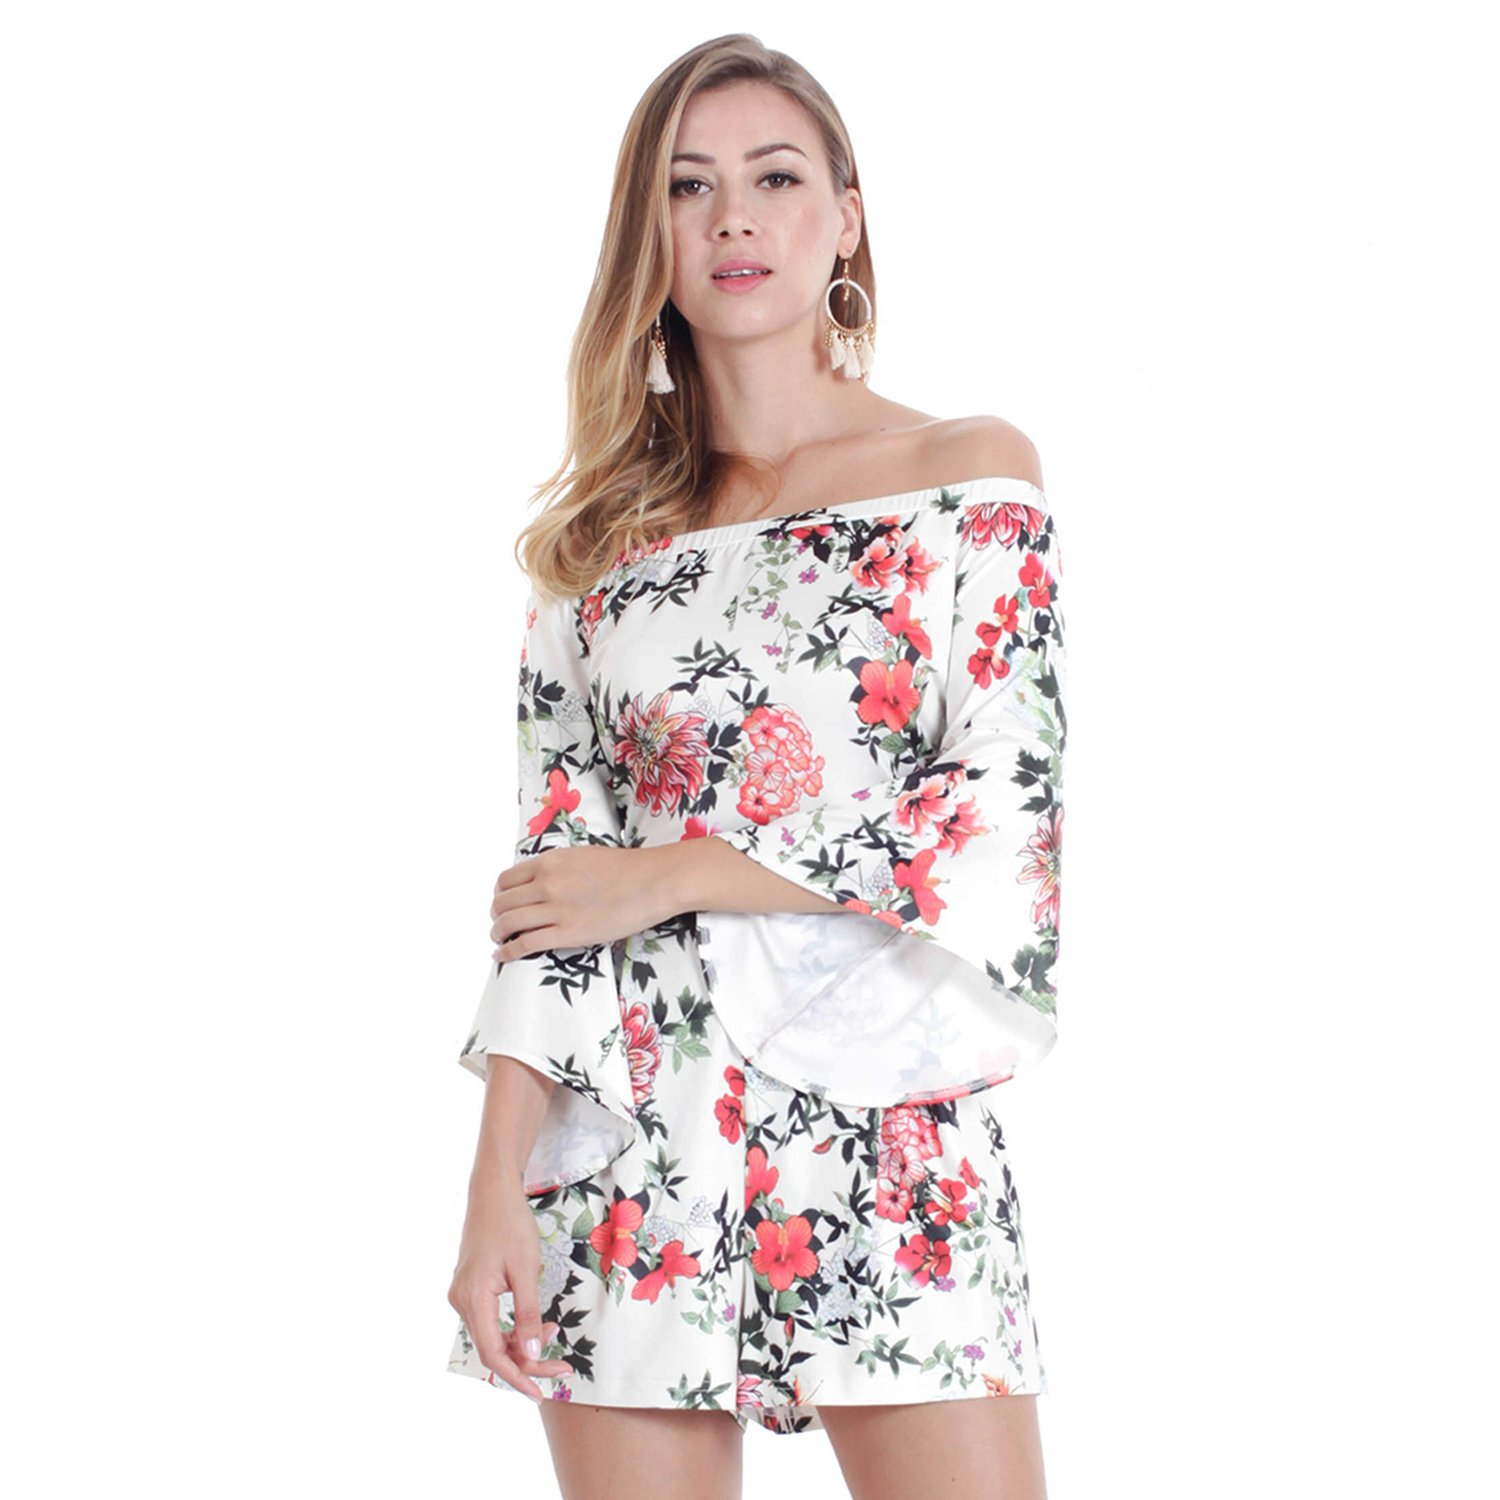 3ed2d4e747 Amazon.com  OUMAL Women Cute Rompers Halter Neck Floral Print Backless Short  Beach Boho Summer Jumpsuits with Long Sleeves  Clothing